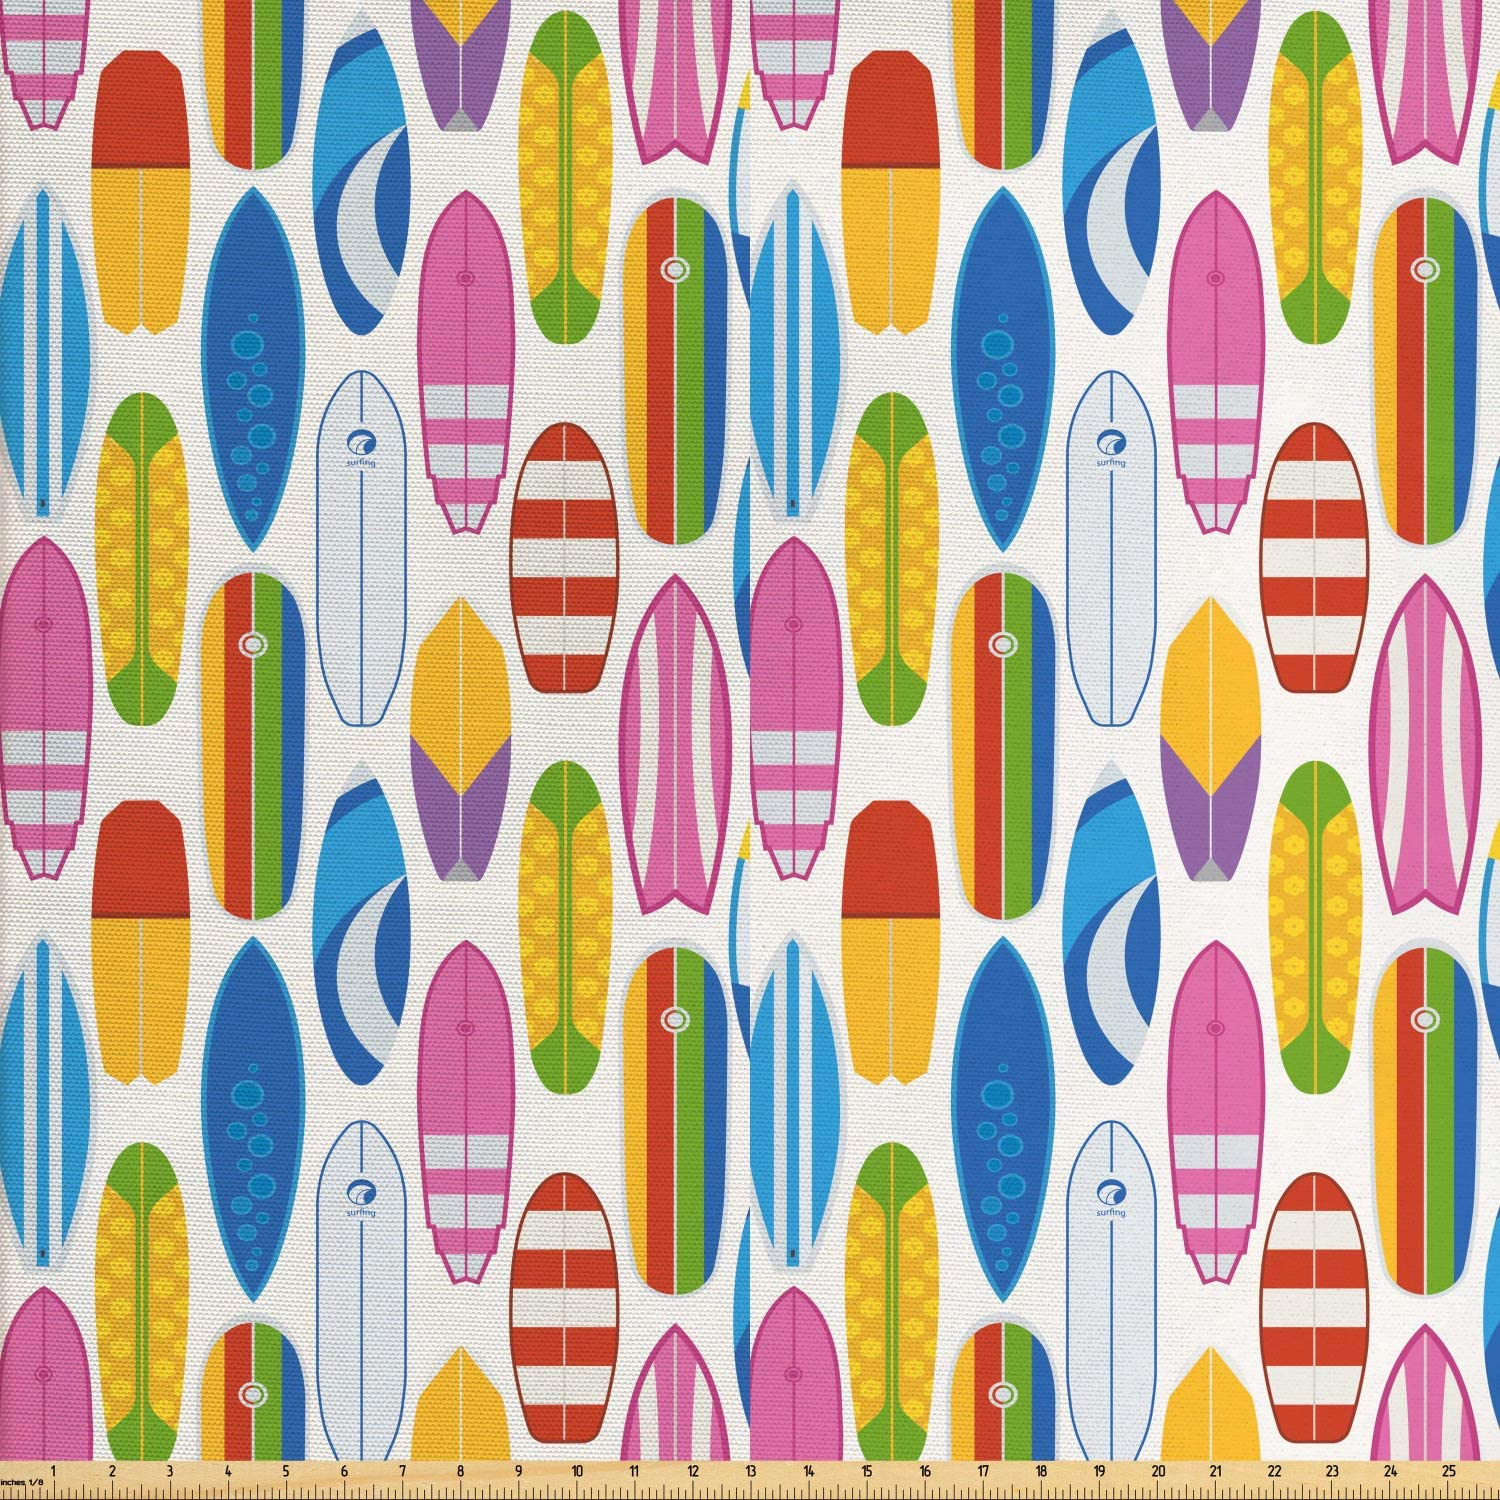 Ambesonne Surfing Fabric by The Yard, Repeating Summer Beach and Ocean Fun Item Colorful Various Surfboards Pattern, Decorative Fabric for Upholstery and Home Accents, 1 Yard, Pink Yellow